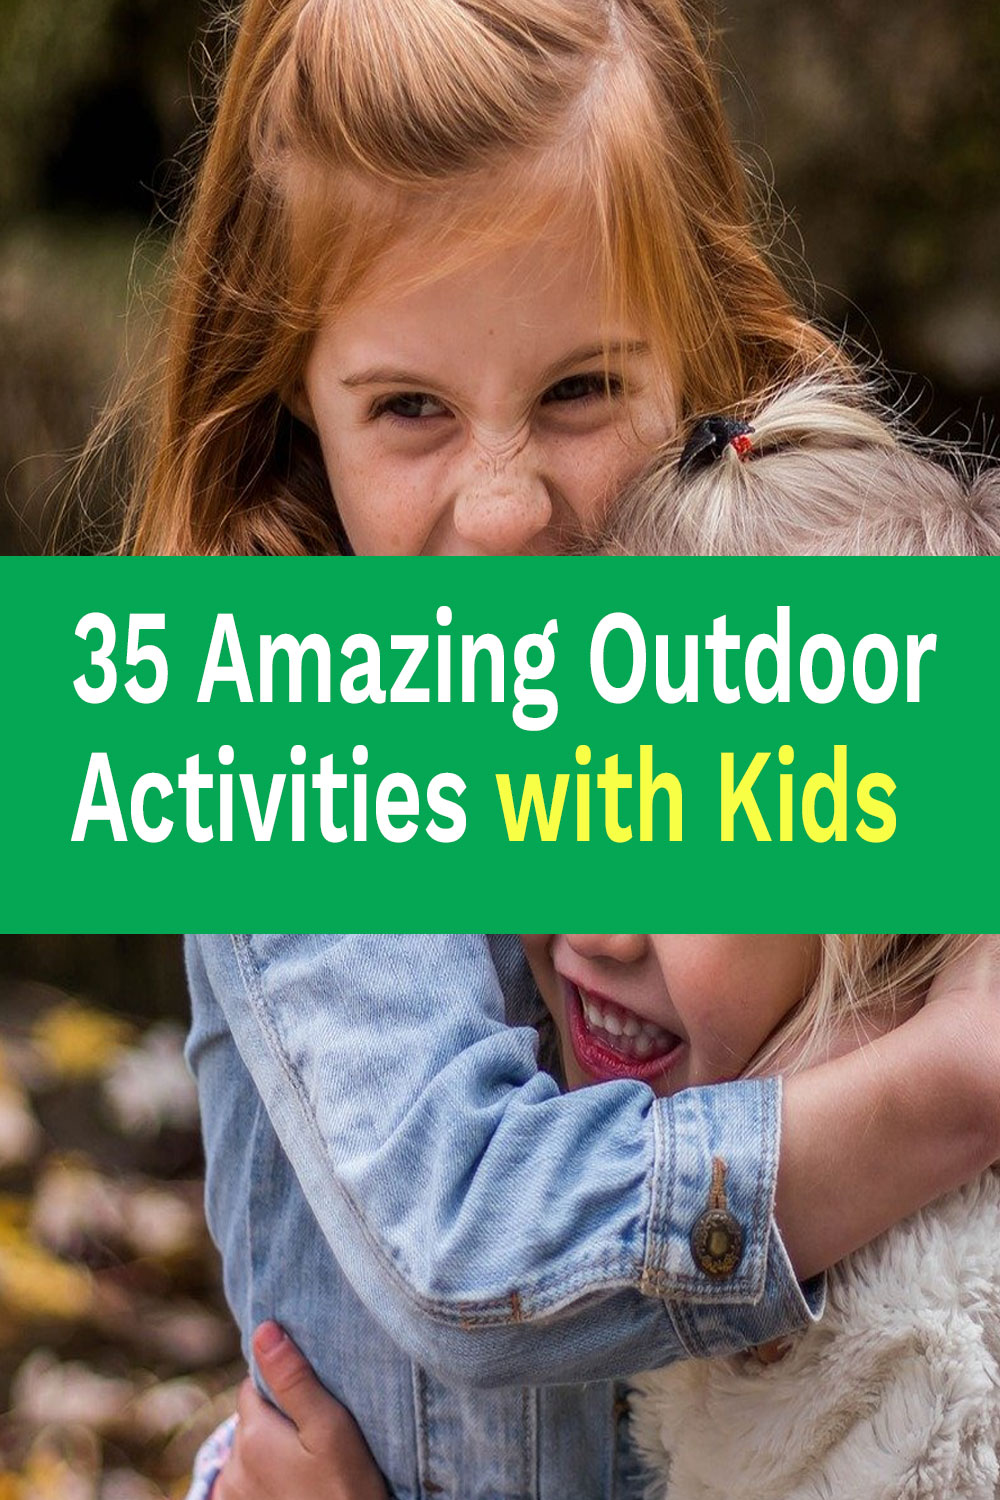 35 amazing outdoor activities with kids